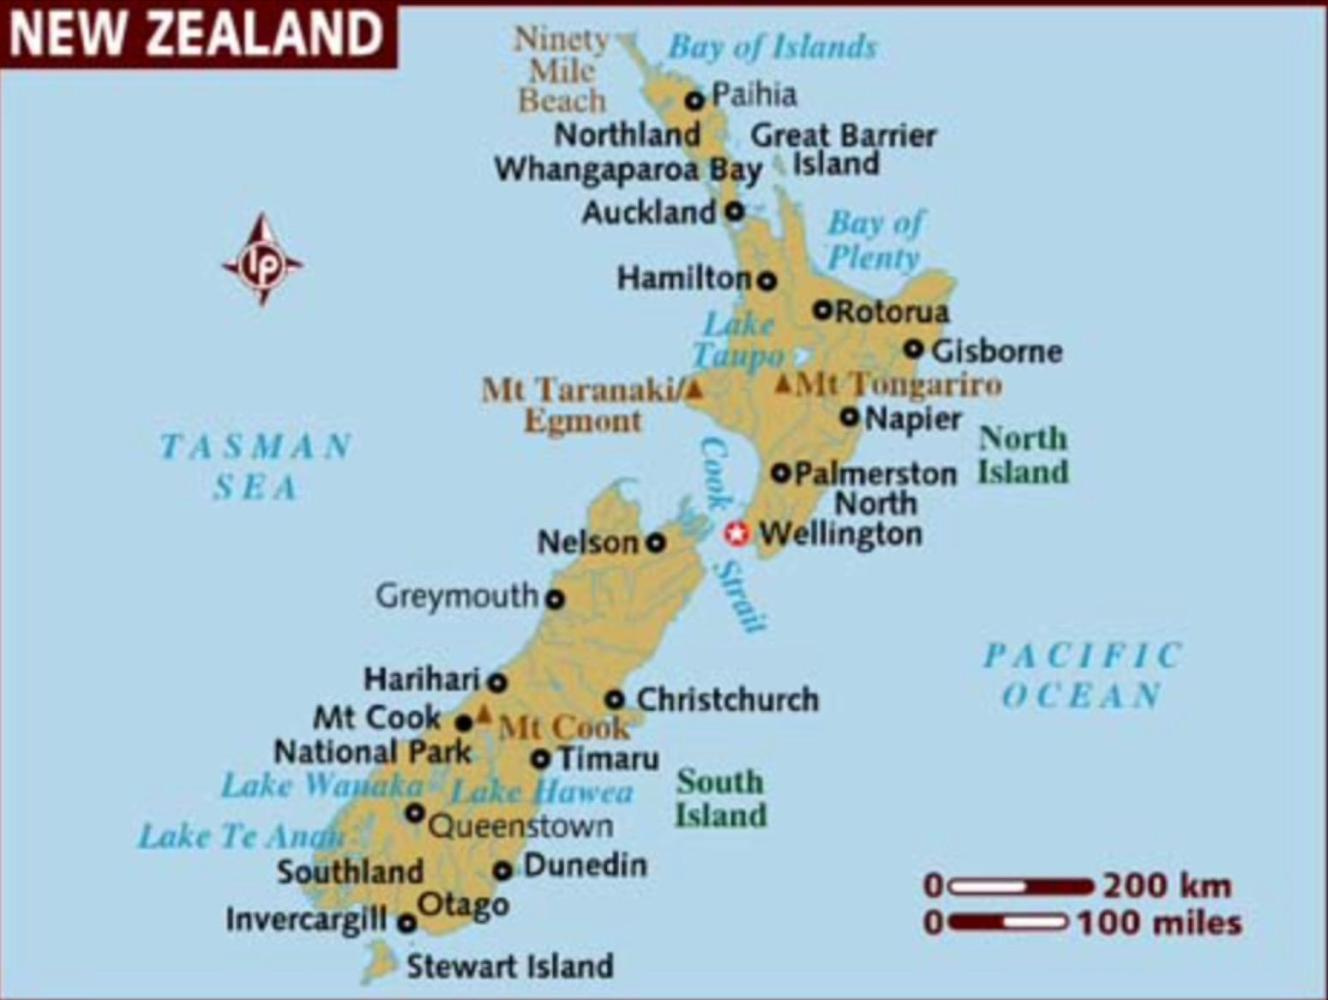 Map of New Zealand Serious cycling starts 11 Jan 17 New Zealand